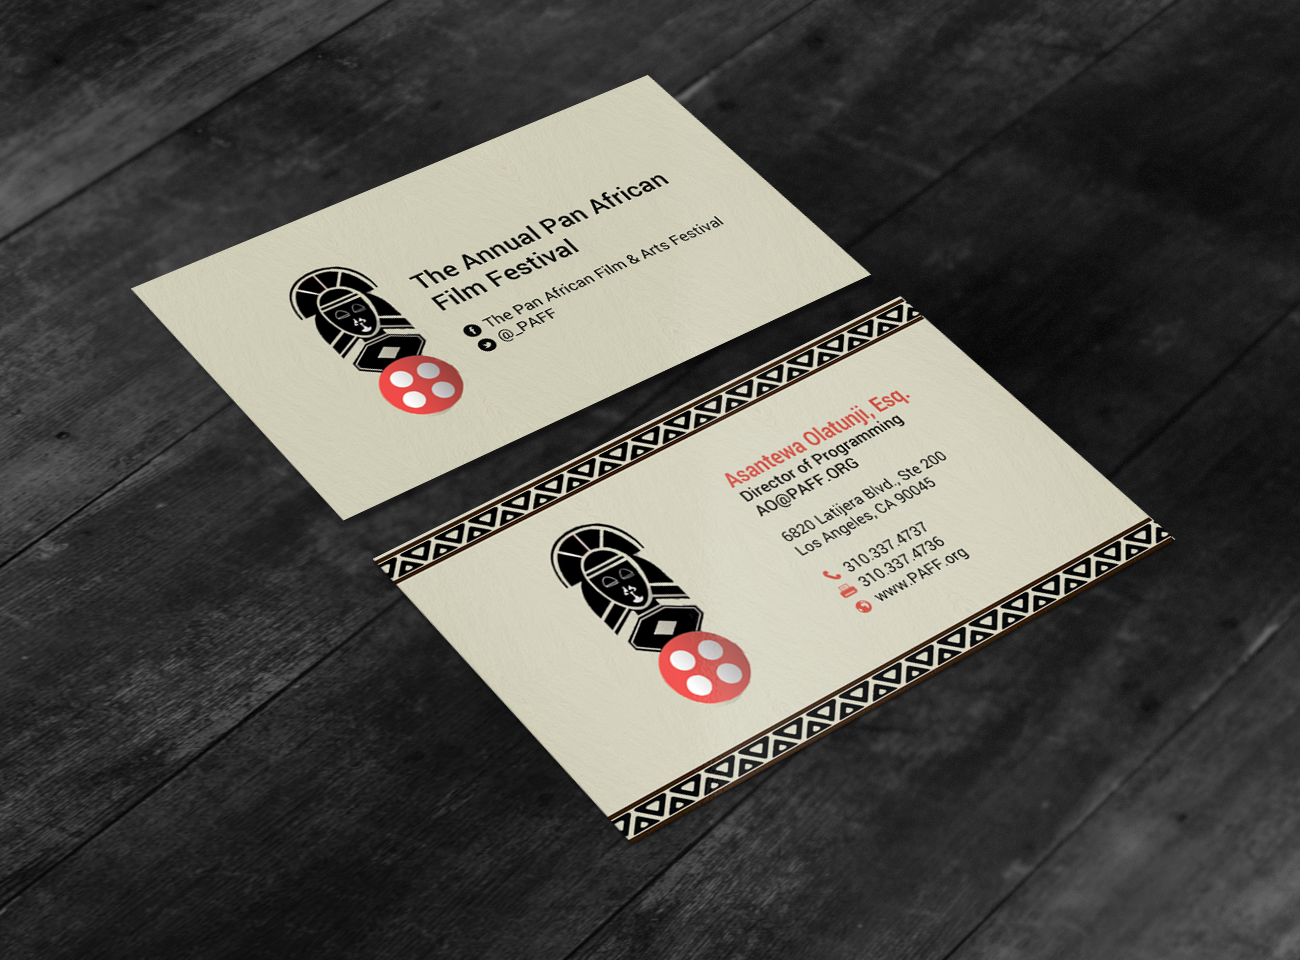 Business business card design for pan african film festival by business business card design for pan african film festival in united states design 15879994 colourmoves